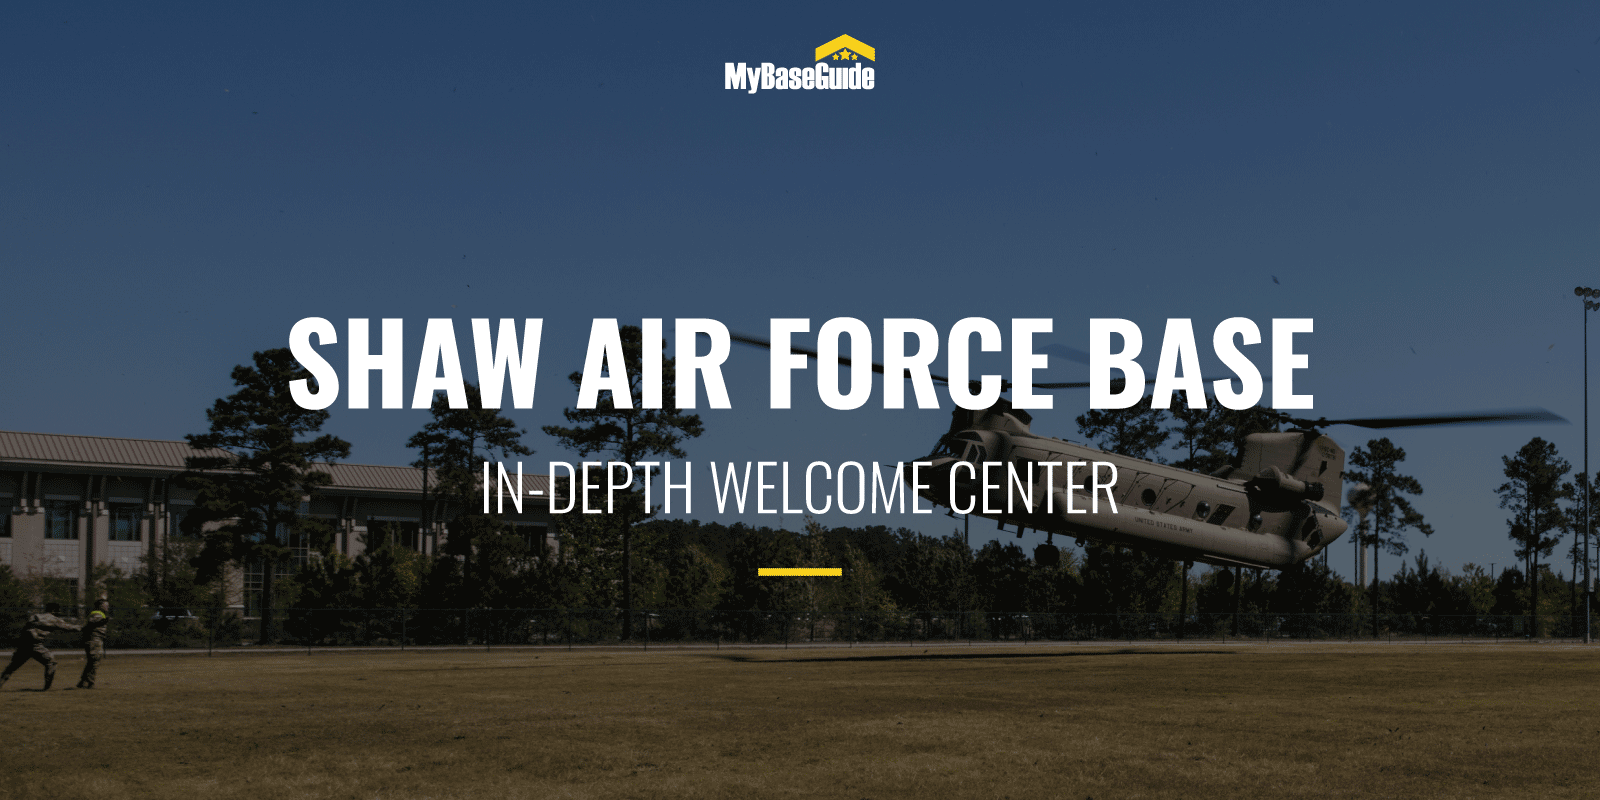 Shaw Air Force Base: In-Depth Welcome Center